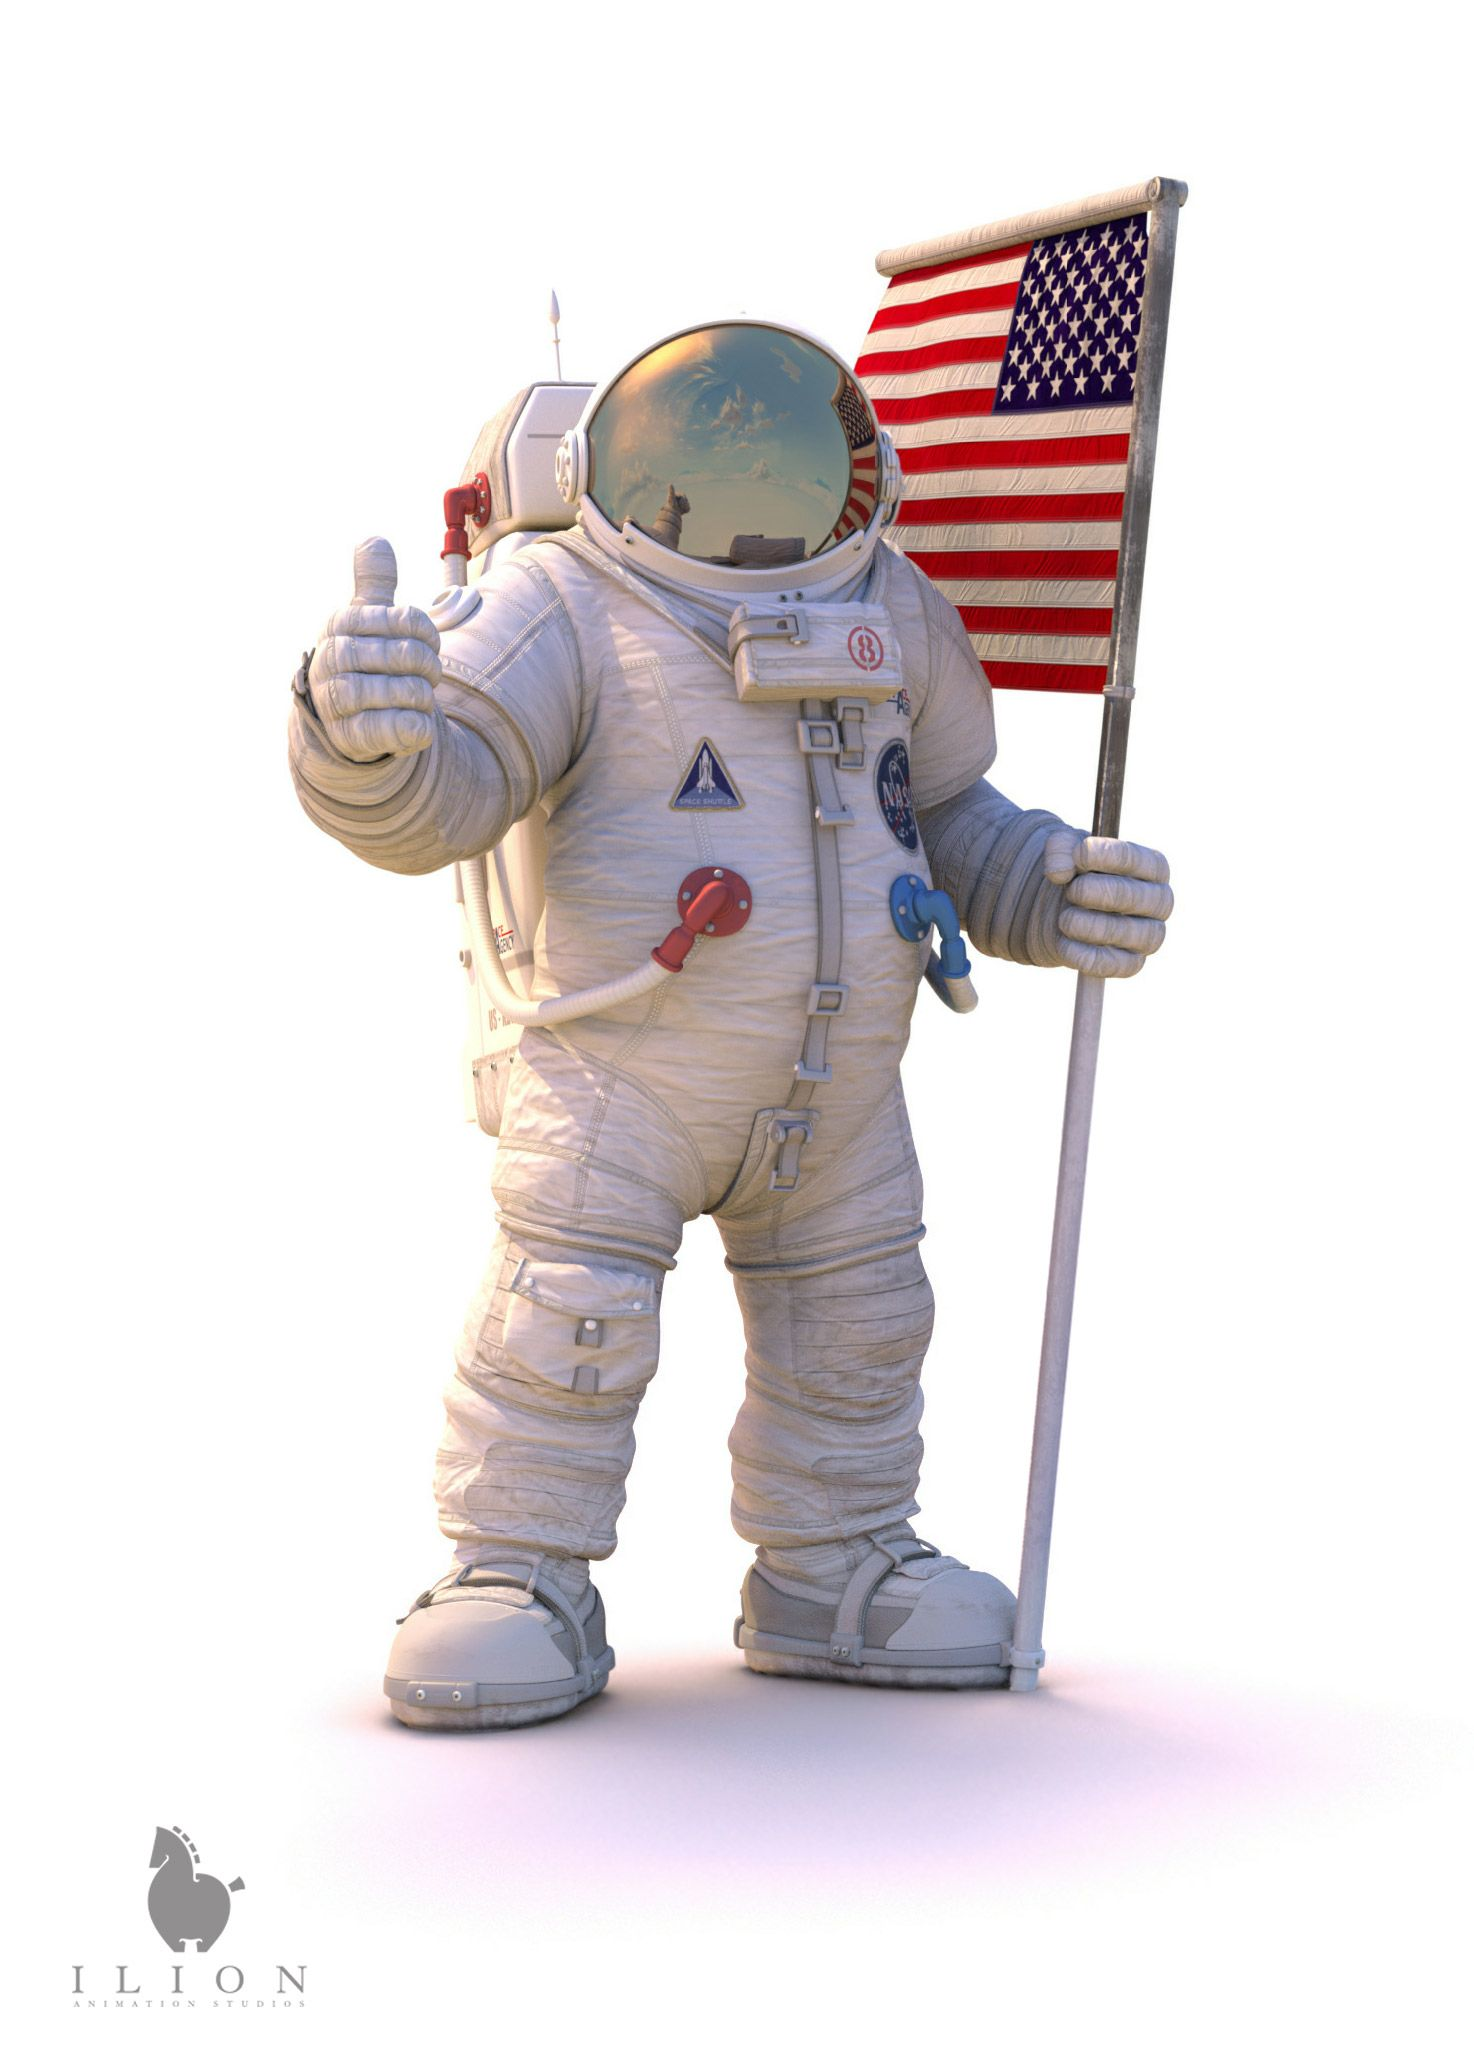 Astronaut 3D 51 Studio Lion References